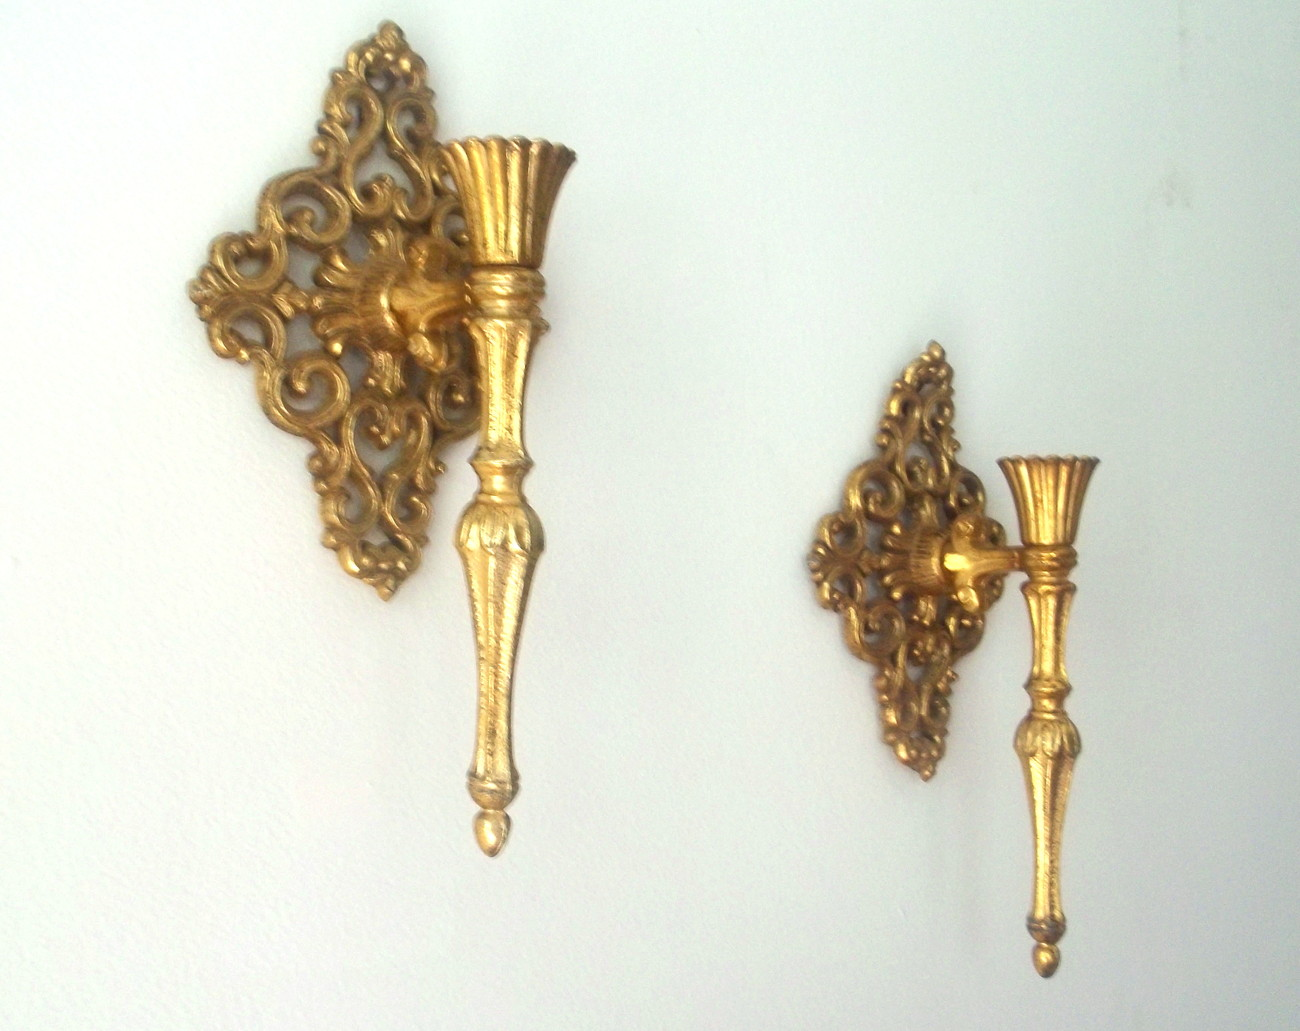 Home Interiors Brass Wall Sconces Gold Diamond Scroll Set of 2 - Candle Holders & Accessories